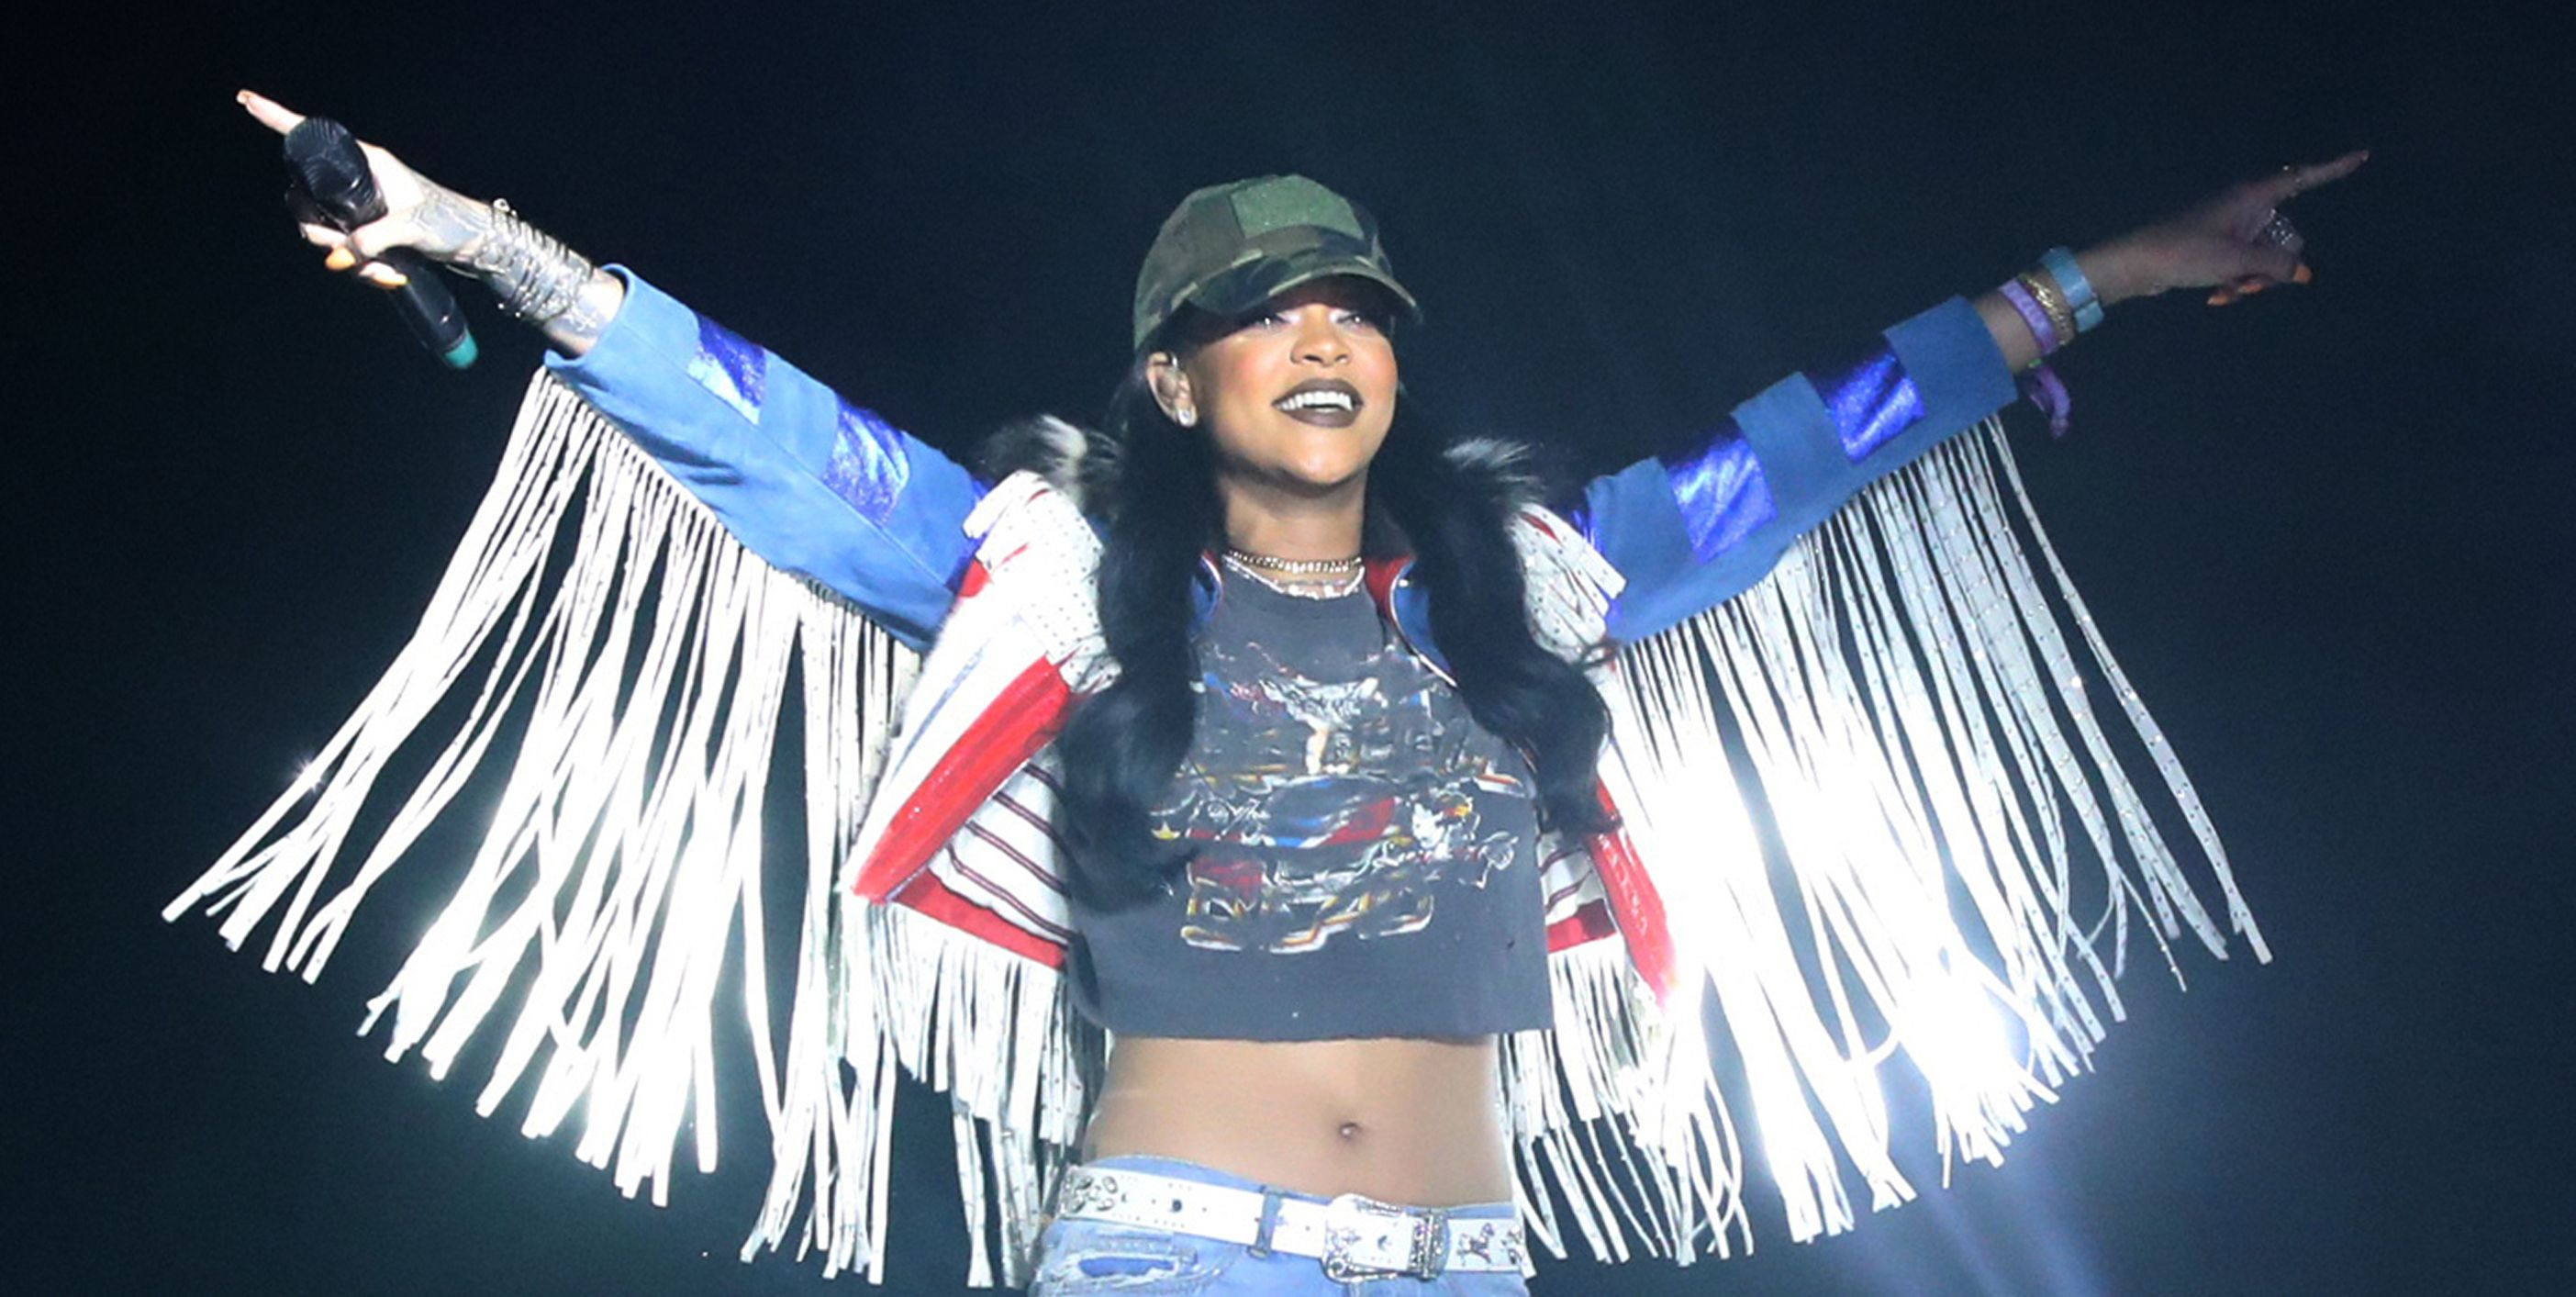 Rihanna's Illuminati Ties Have Groups in Senegal Pissed About Her Visit